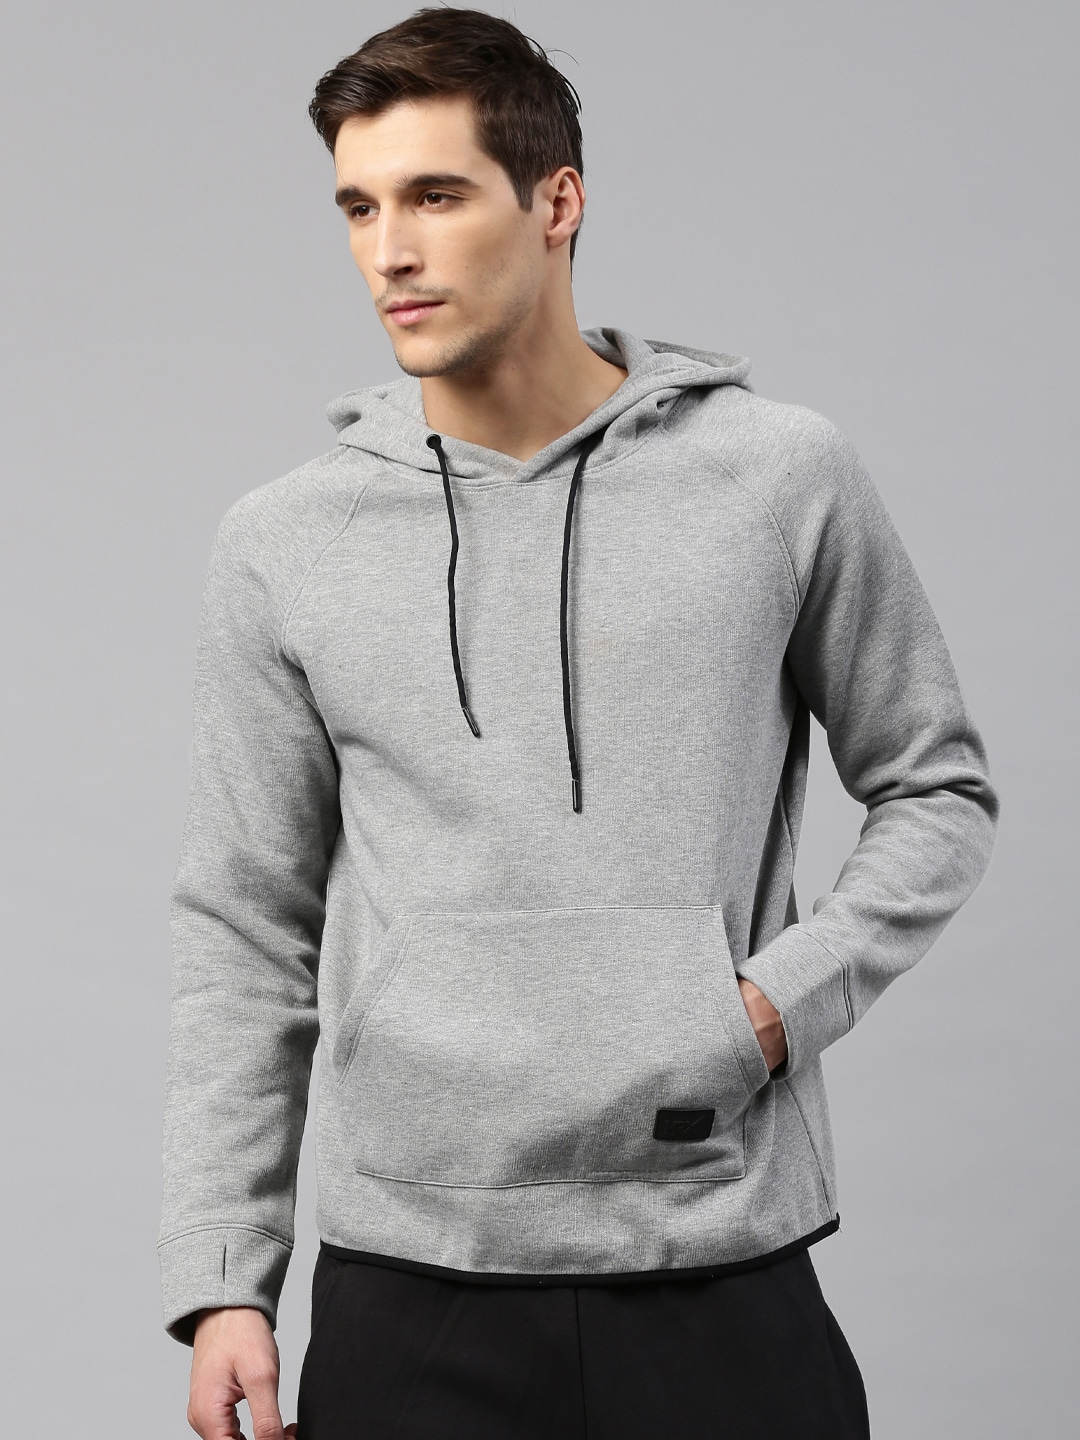 Buy HRX by Hrithik Roshan Grey Melange Solid Hooded Men's Sweatshirt At Best Price